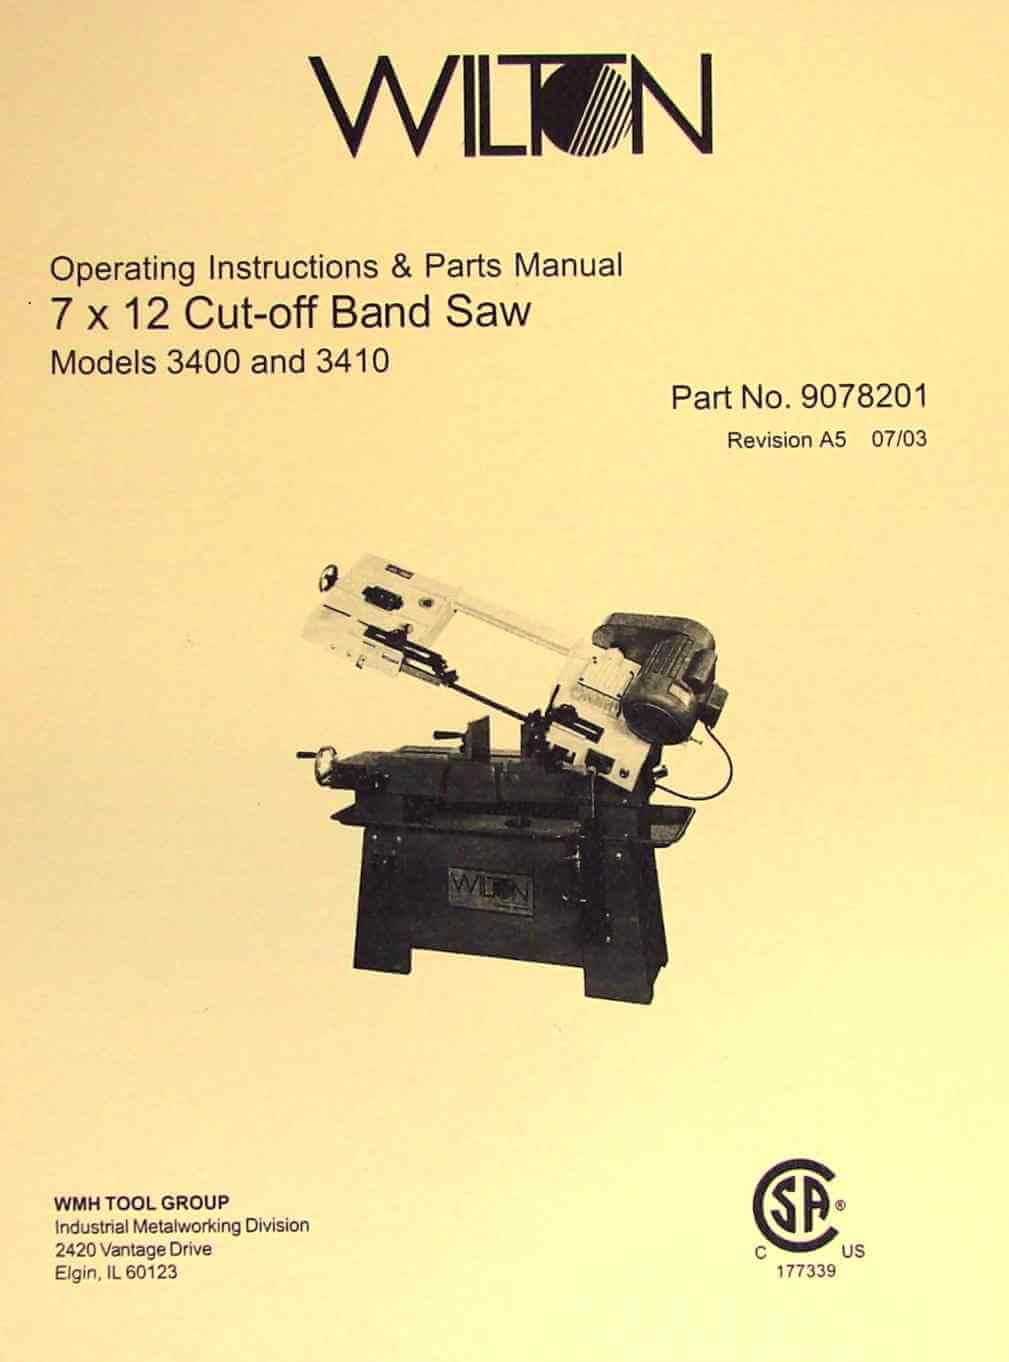 WILTON 3400 and 3410 7x12 Horizontal Band Saw Instructions and Parts Manual  | Ozark Tool Manuals & Books